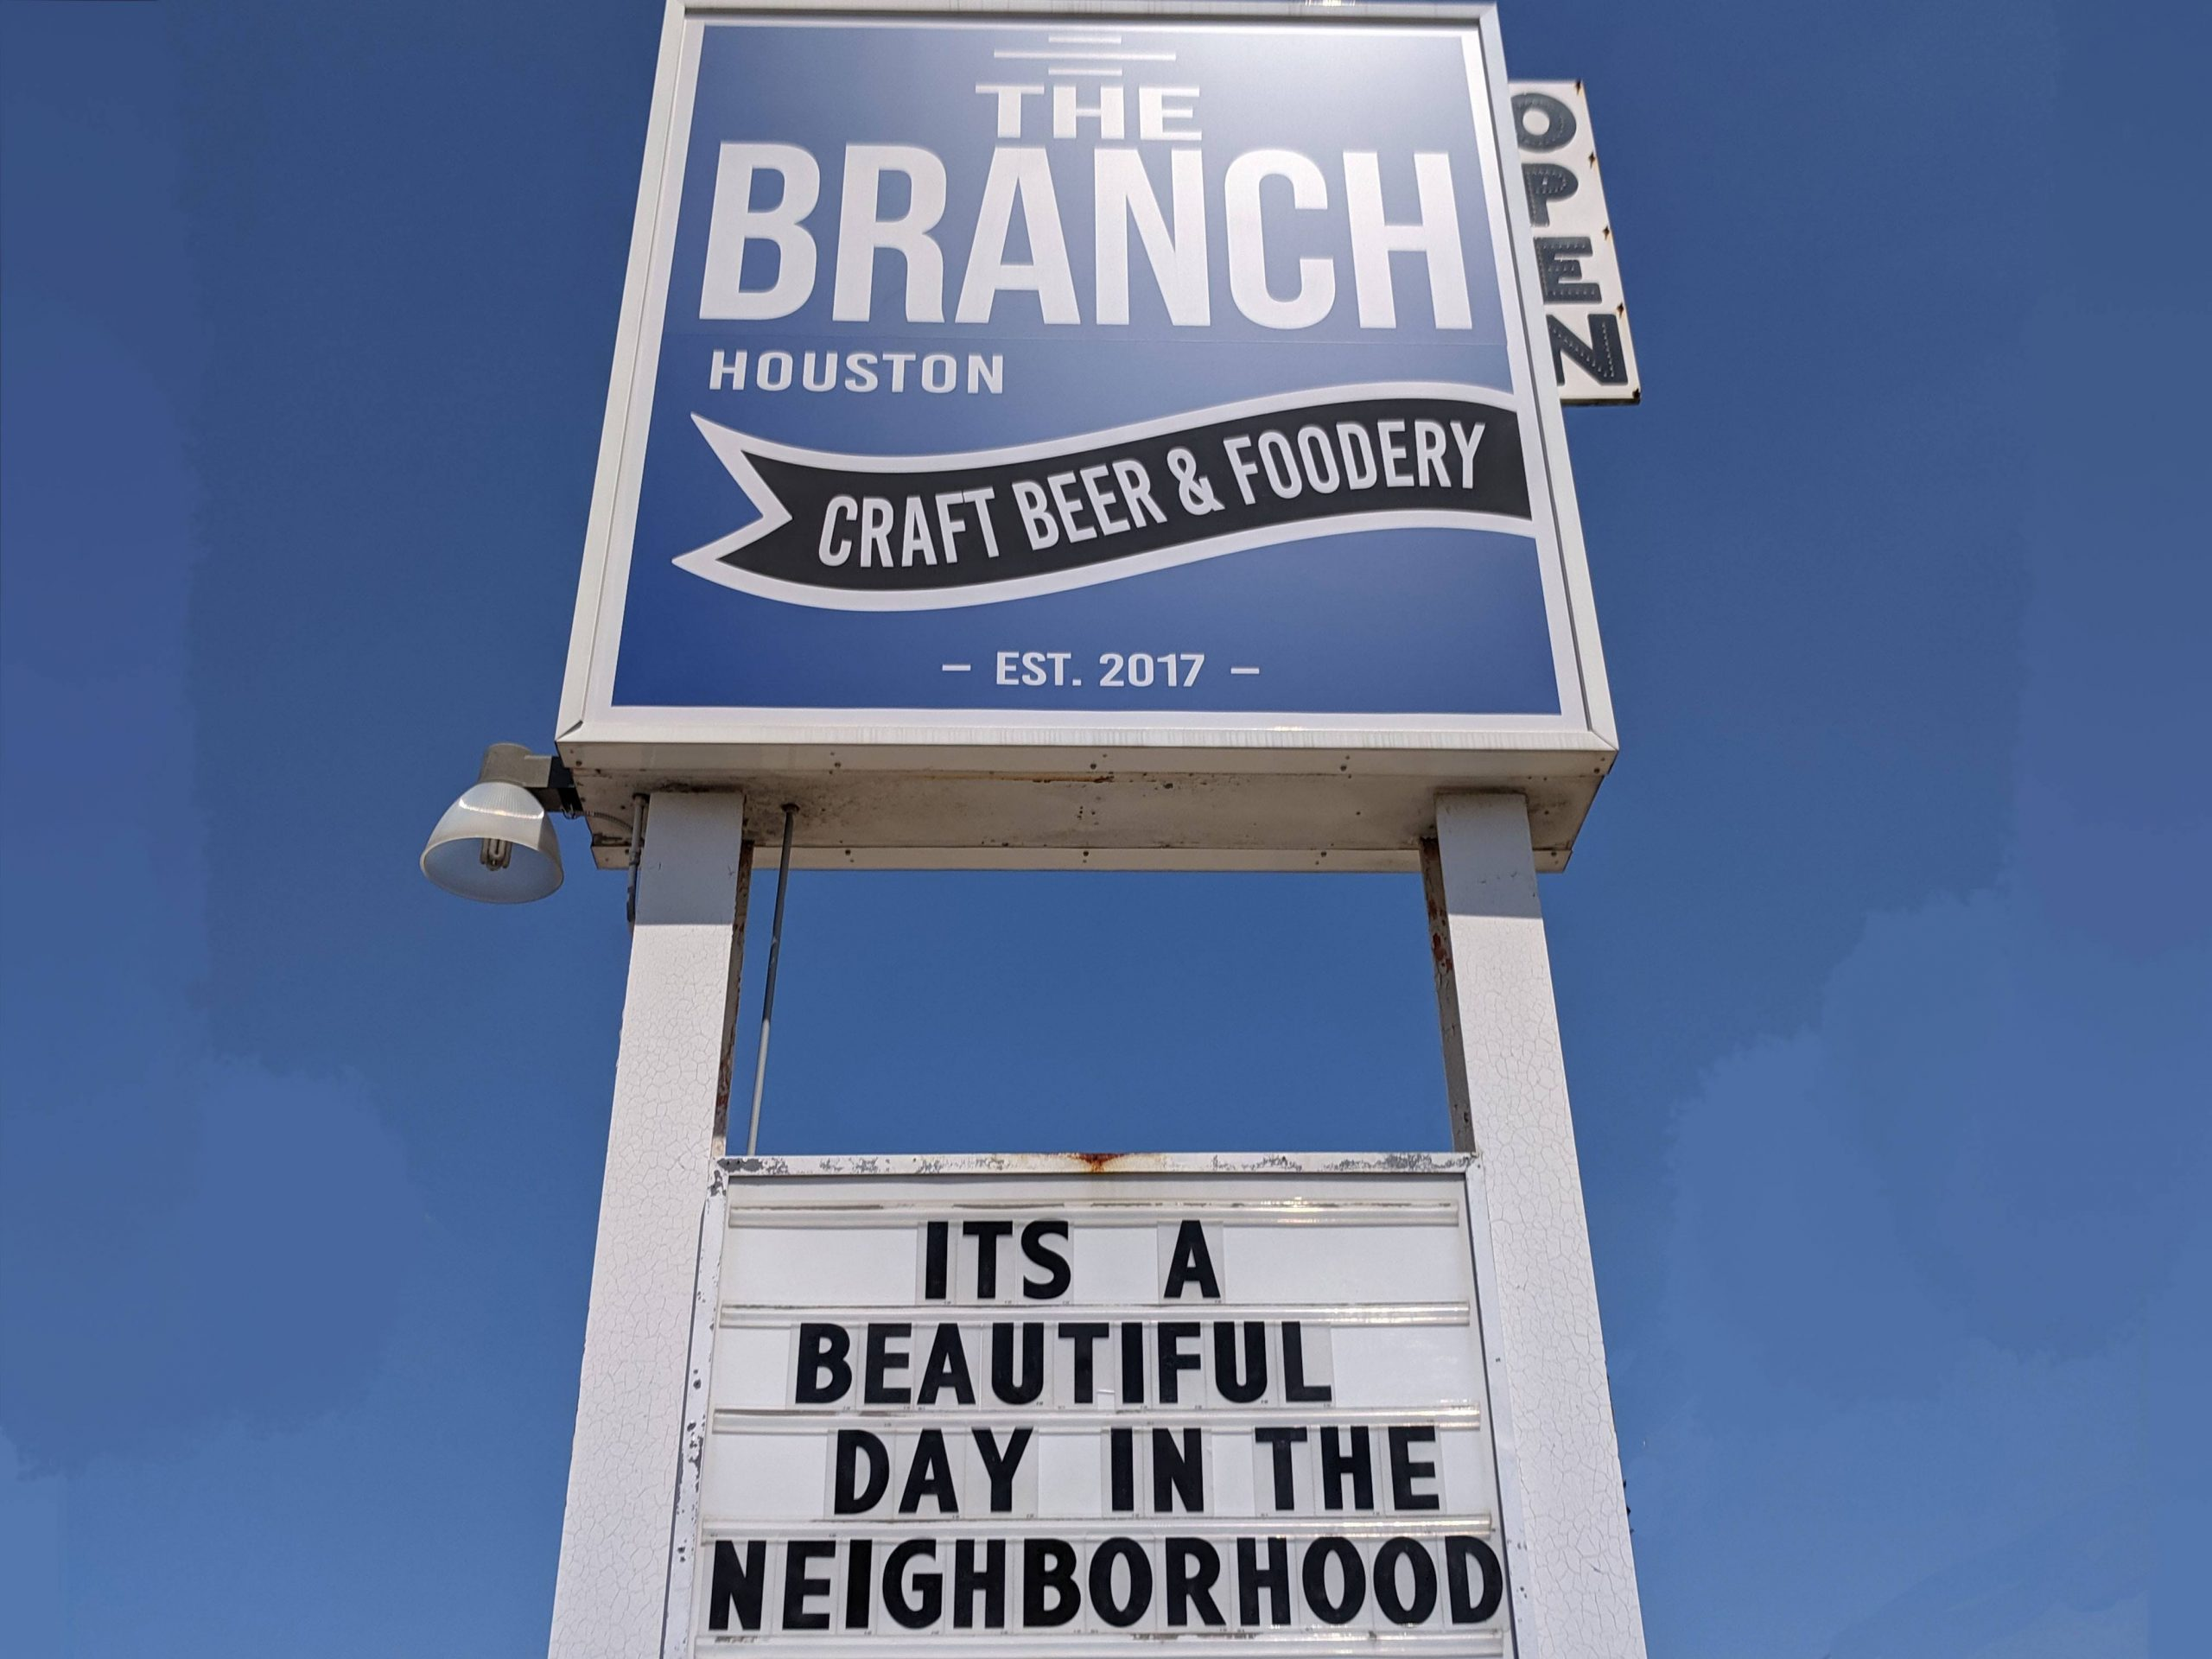 The Branch beautiful day sign